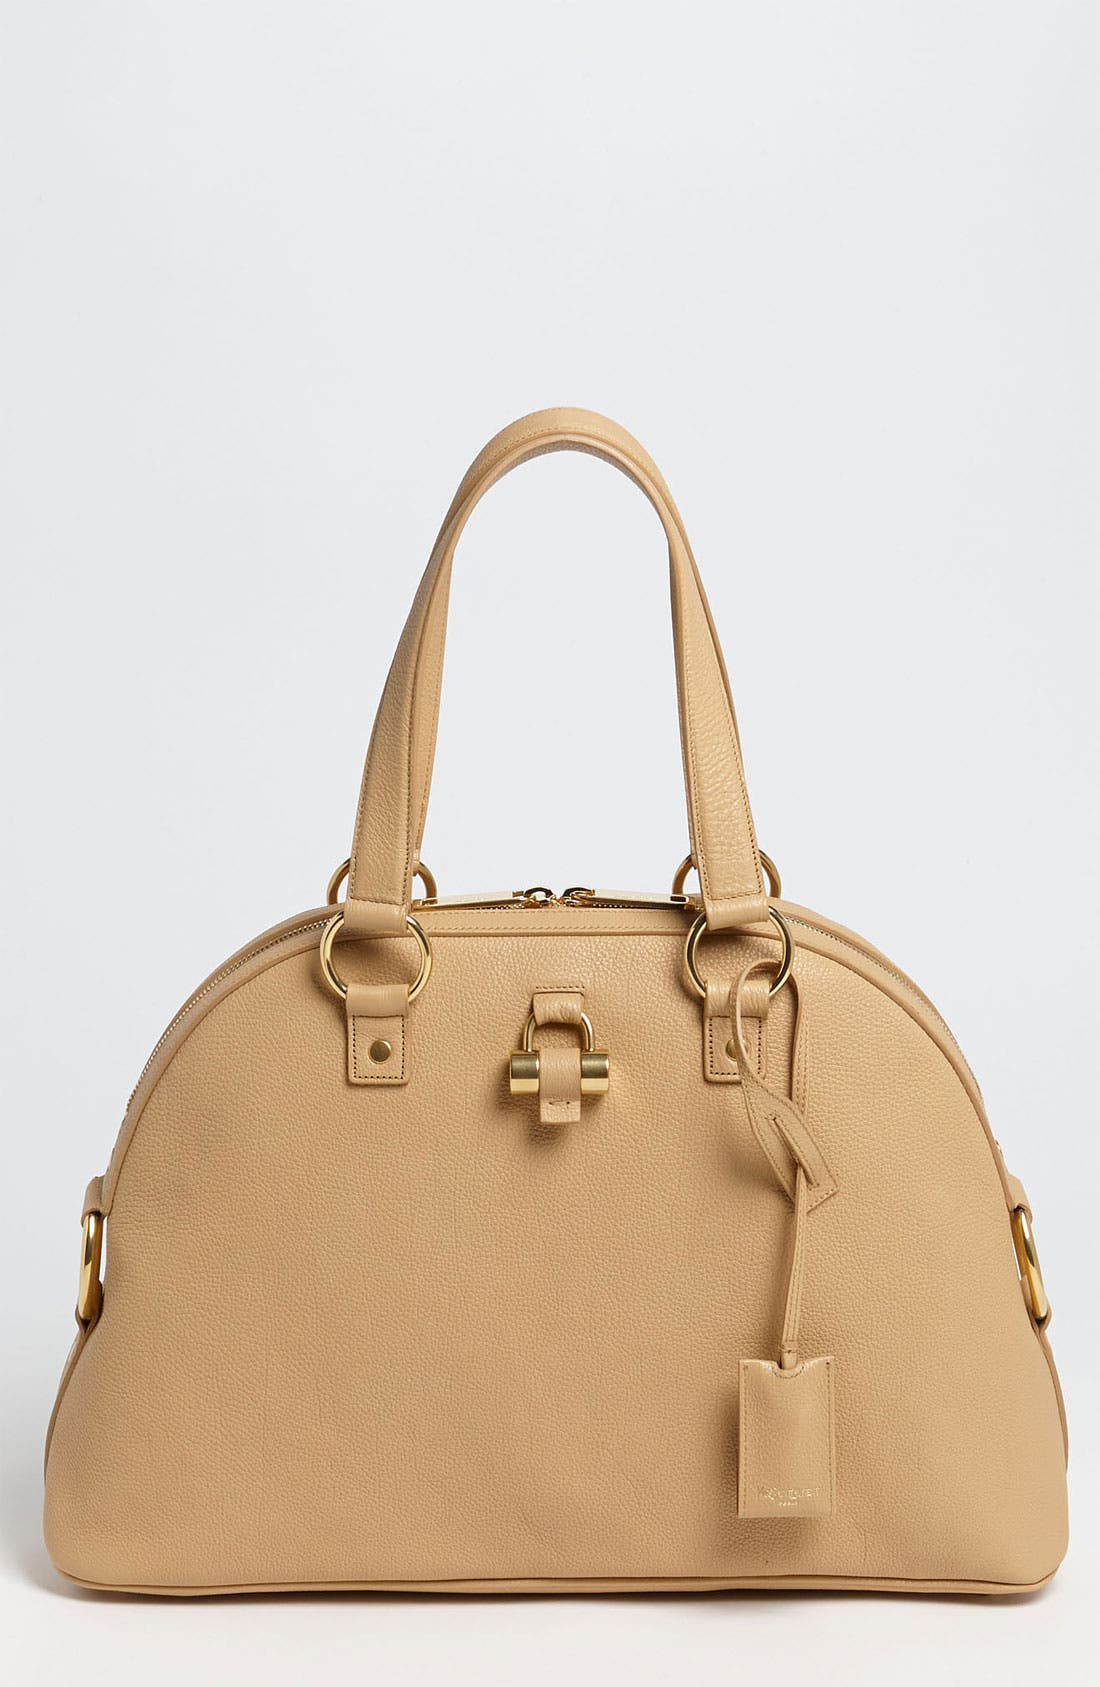 Main Image - Saint Laurent 'Muse - Medium' Leather Dome Satchel